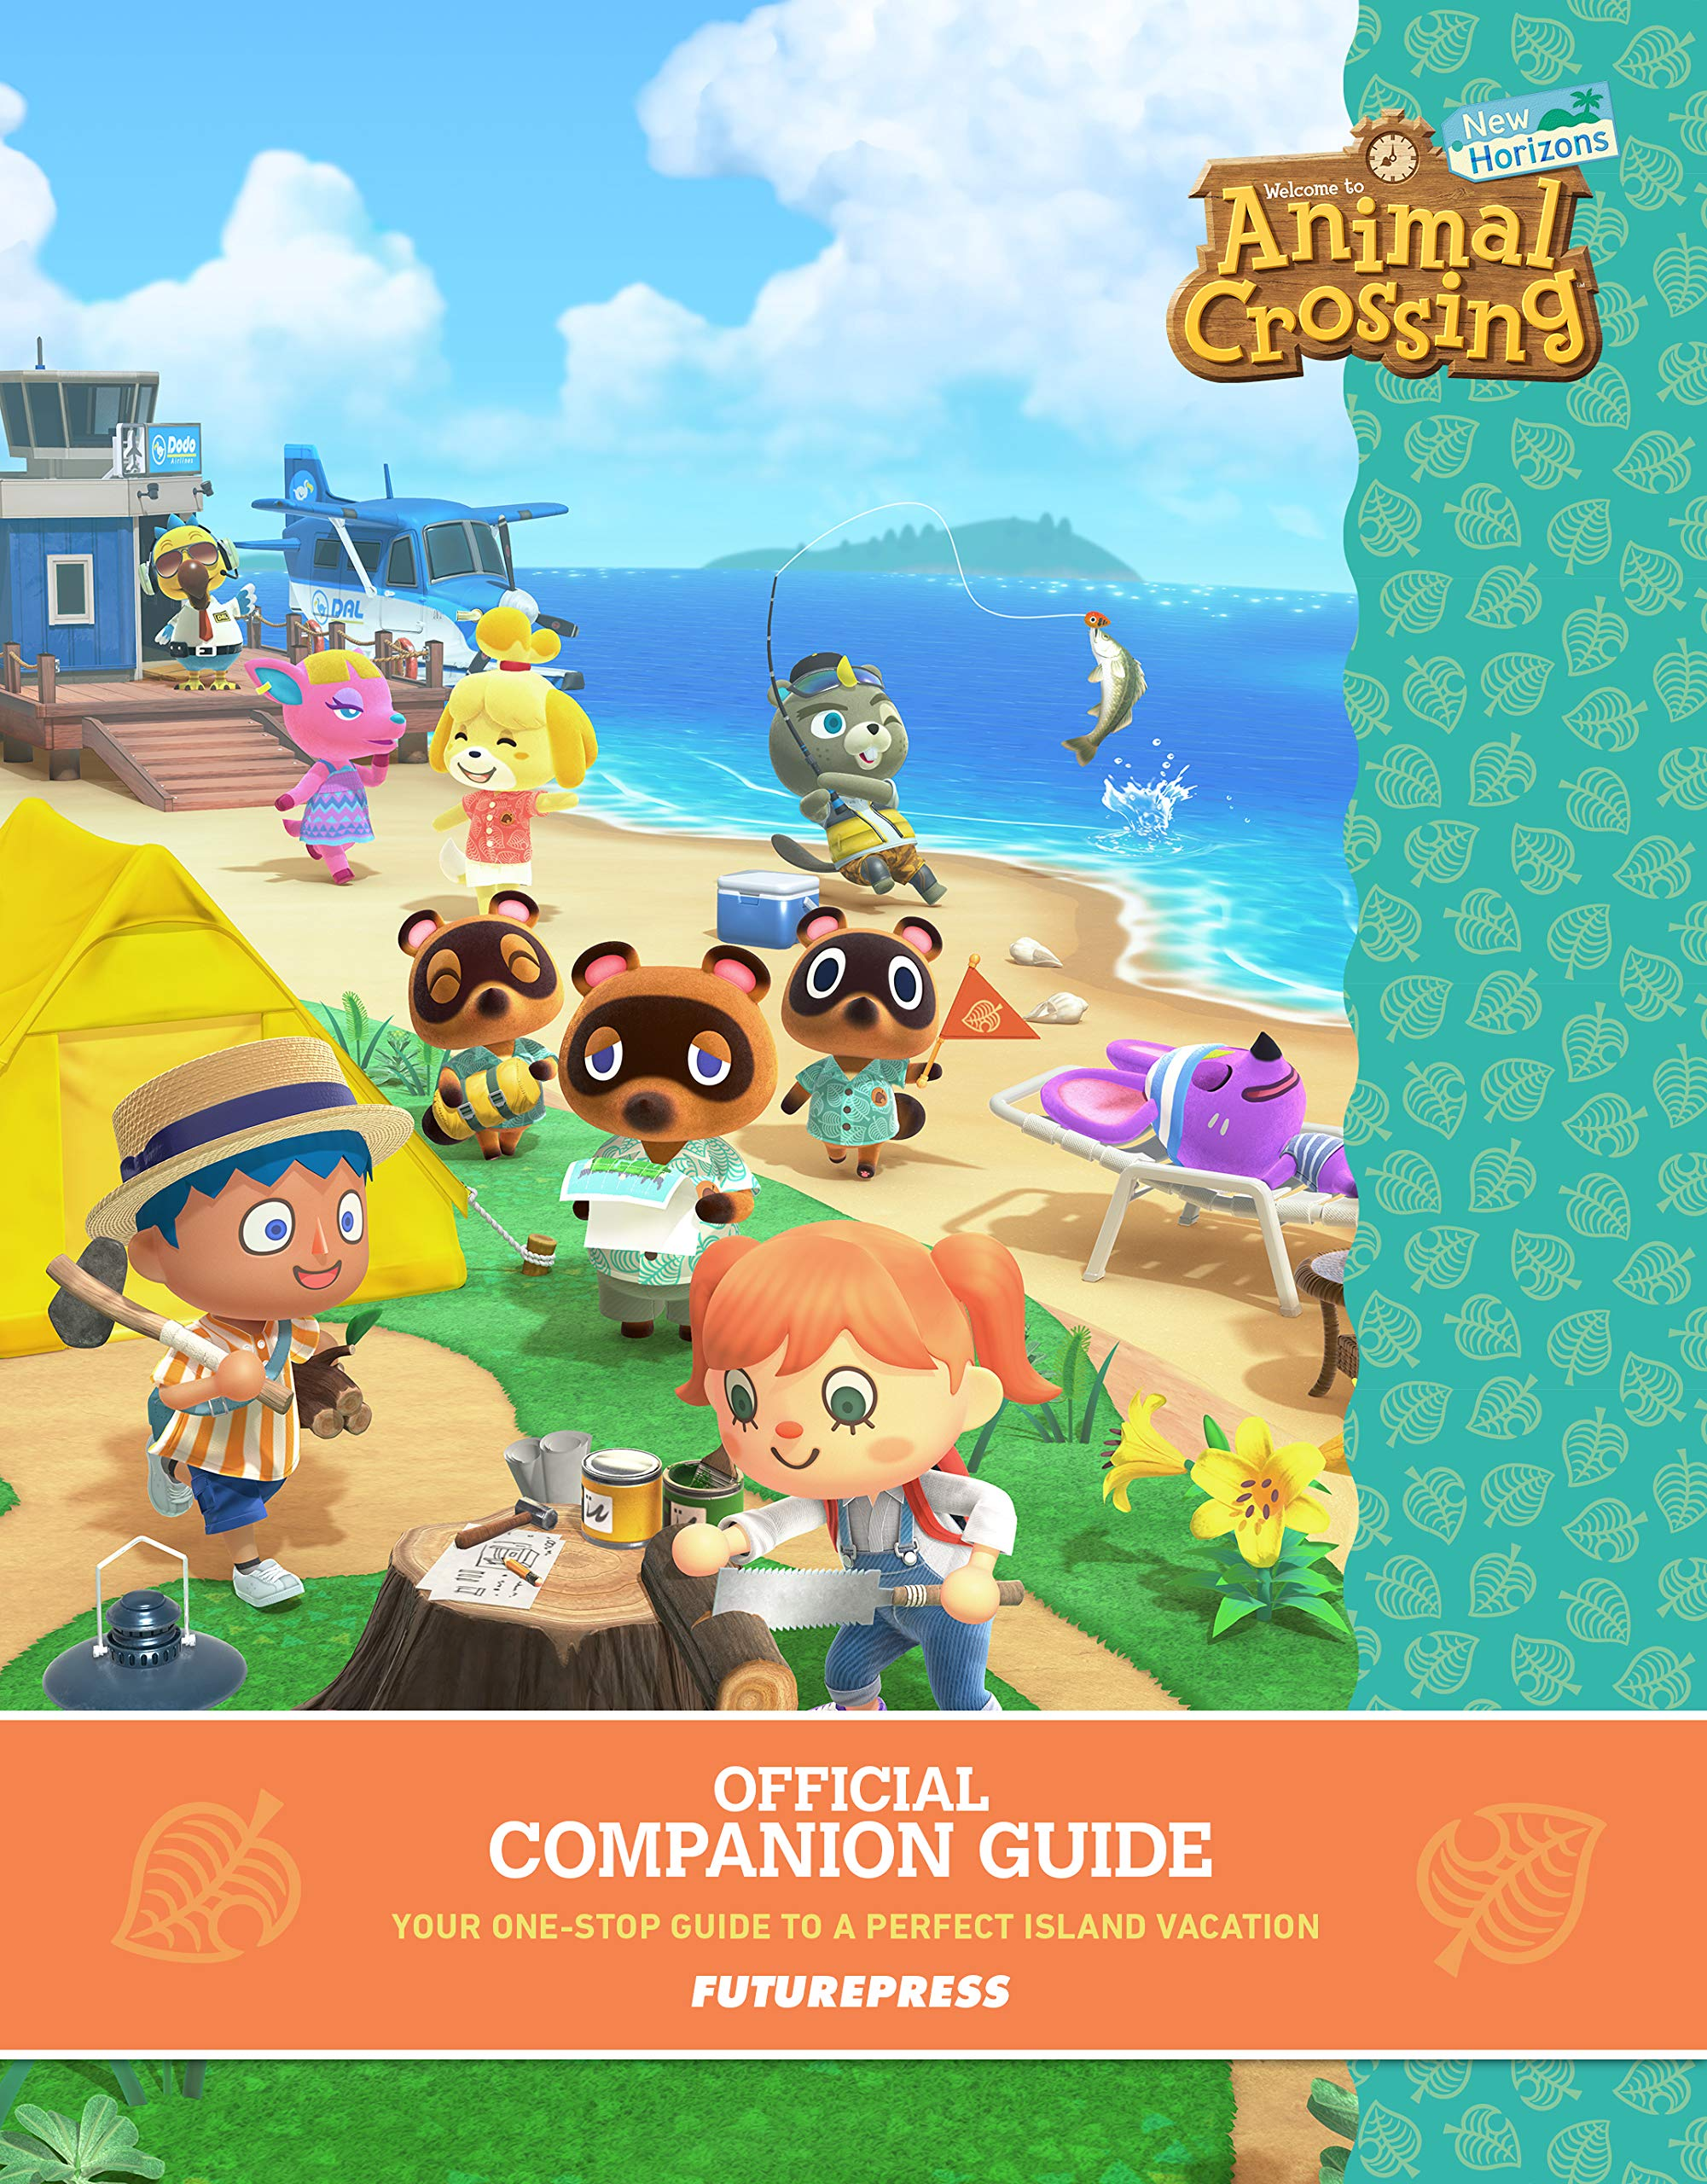 Animal Crossing New Horizons Official Companion Guide Future Press 9783869931005 Amazon Com Books The table below contains all main resource items from the acnh game on the nintendo switch. new horizons official companion guide